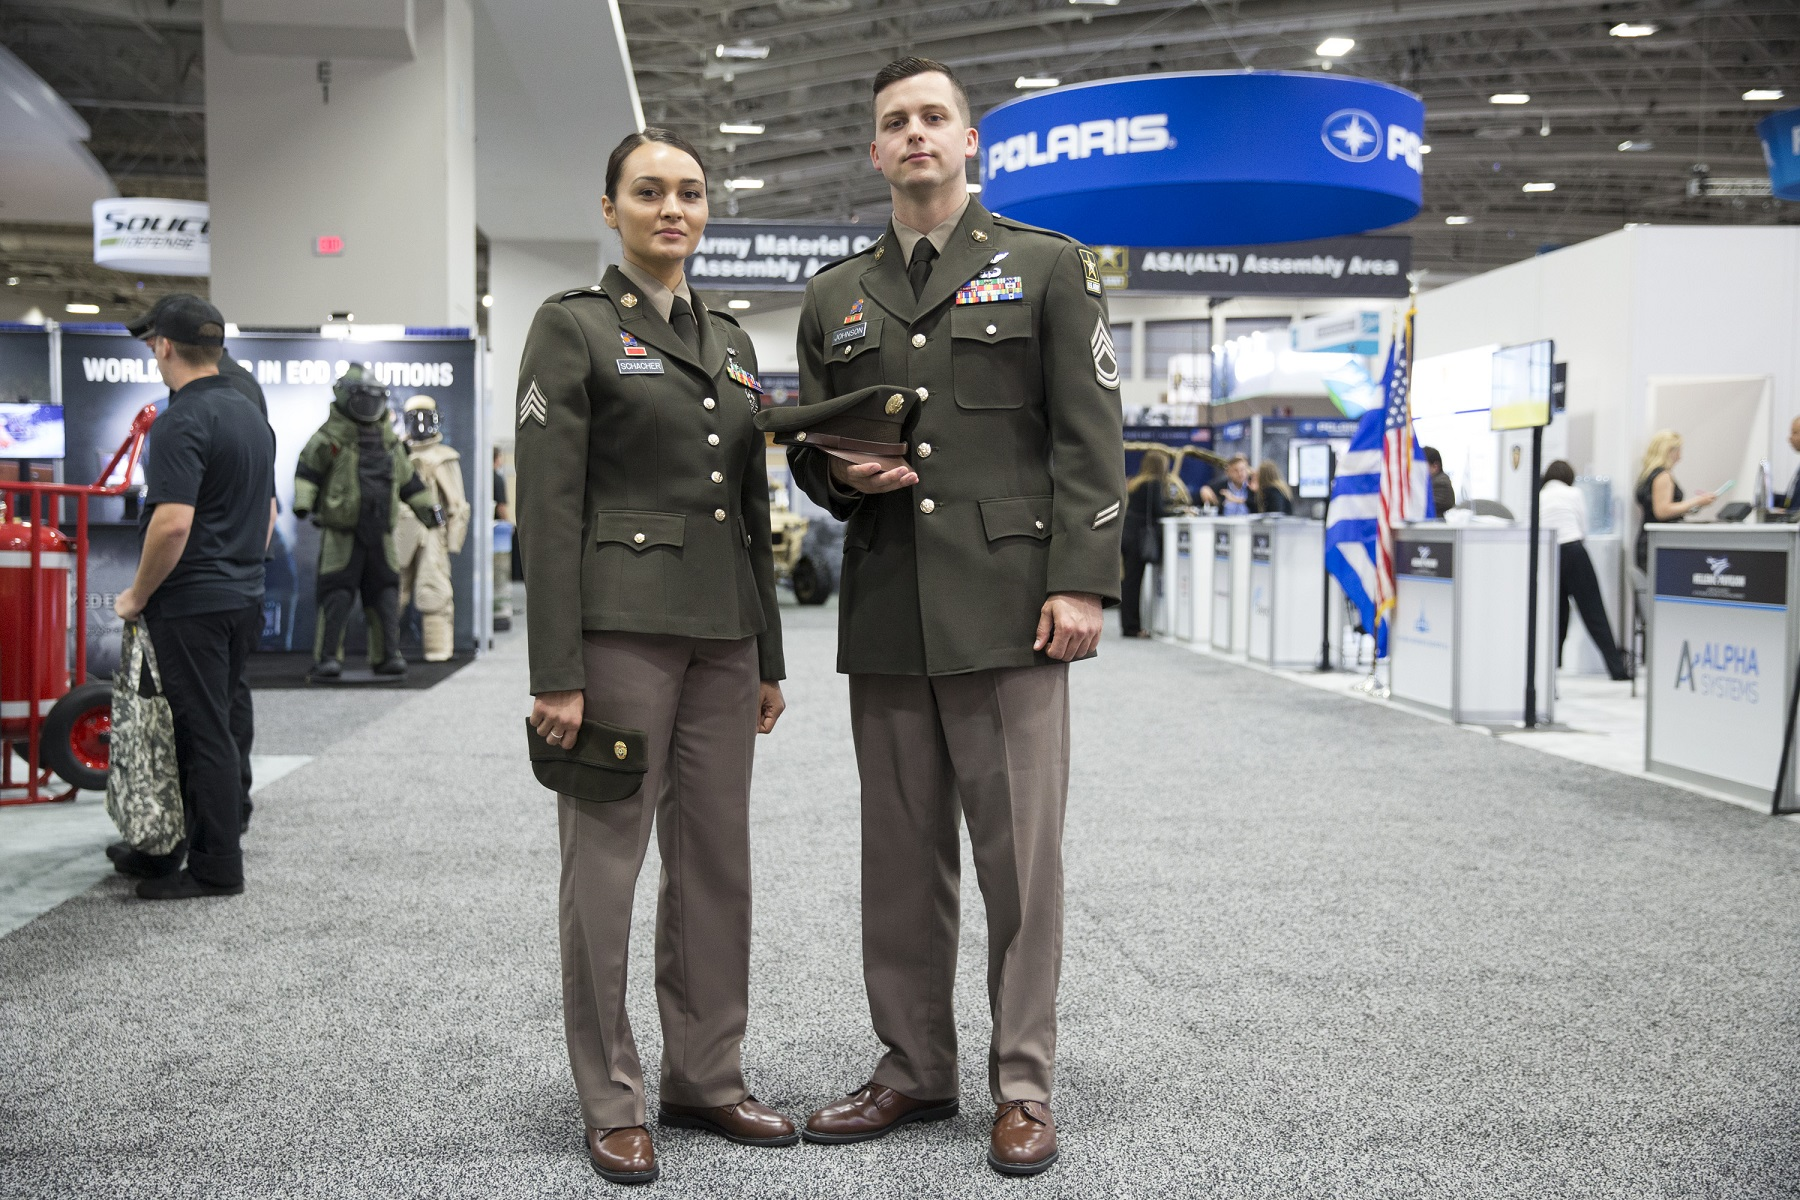 You're not seeing things: Soldiers at AUSA are wearing prototype 'pinks and greens'